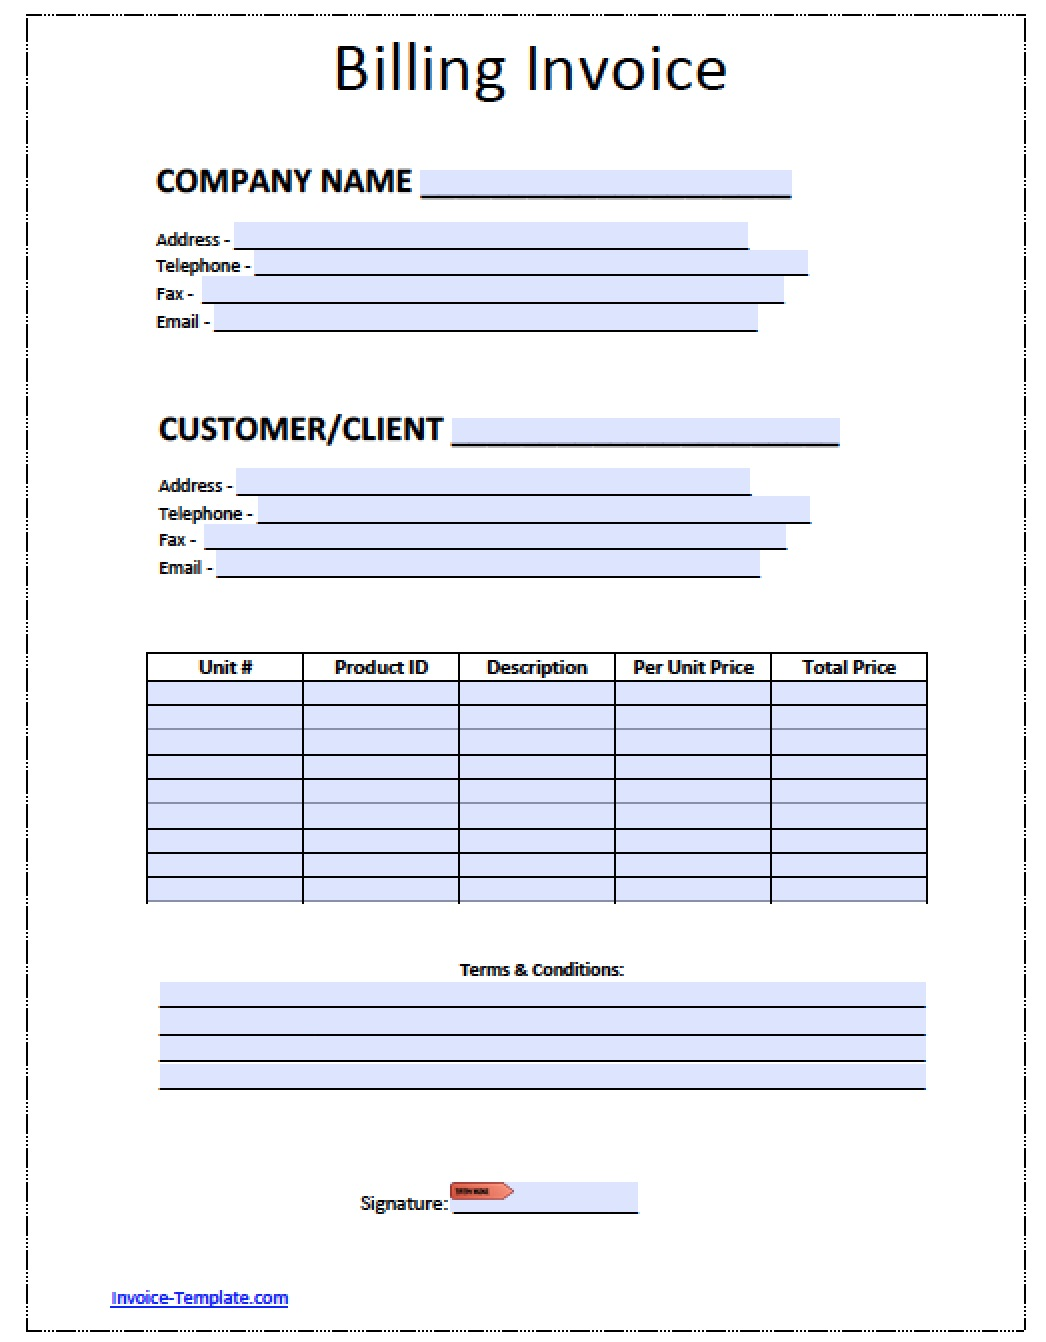 Offtheshelfus  Winsome Billing Invoice Invoices Faq U Cloudflare Support Billing  With Lovely Free Billing Invoice Template  Excel  Pdf  Word Doc  Billing With Cool Computer Repair Invoice Also Free Printable Invoice Form In Addition Sample Commercial Invoice And Invoice Template Word Free As Well As Aynax Free Invoices Additionally Fedex Pay Invoice Online From Happytomco With Offtheshelfus  Lovely Billing Invoice Invoices Faq U Cloudflare Support Billing  With Cool Free Billing Invoice Template  Excel  Pdf  Word Doc  Billing And Winsome Computer Repair Invoice Also Free Printable Invoice Form In Addition Sample Commercial Invoice From Happytomco